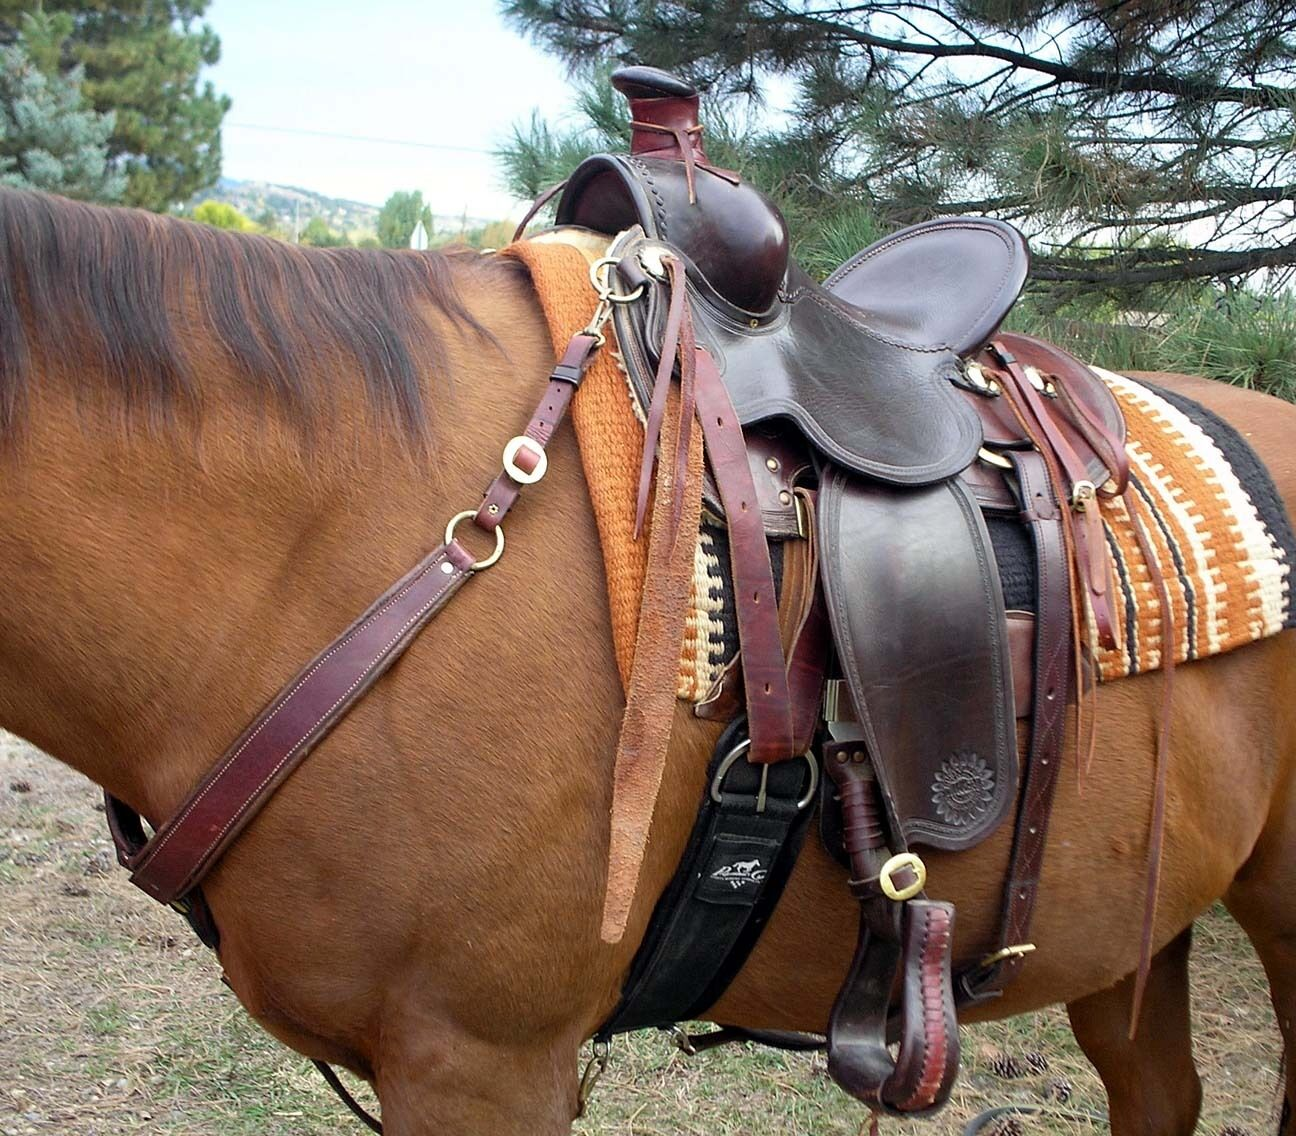 Used Rusty May Western Saddle 14  Dark Oil Very Sturdy Pre-Turned Stirrups